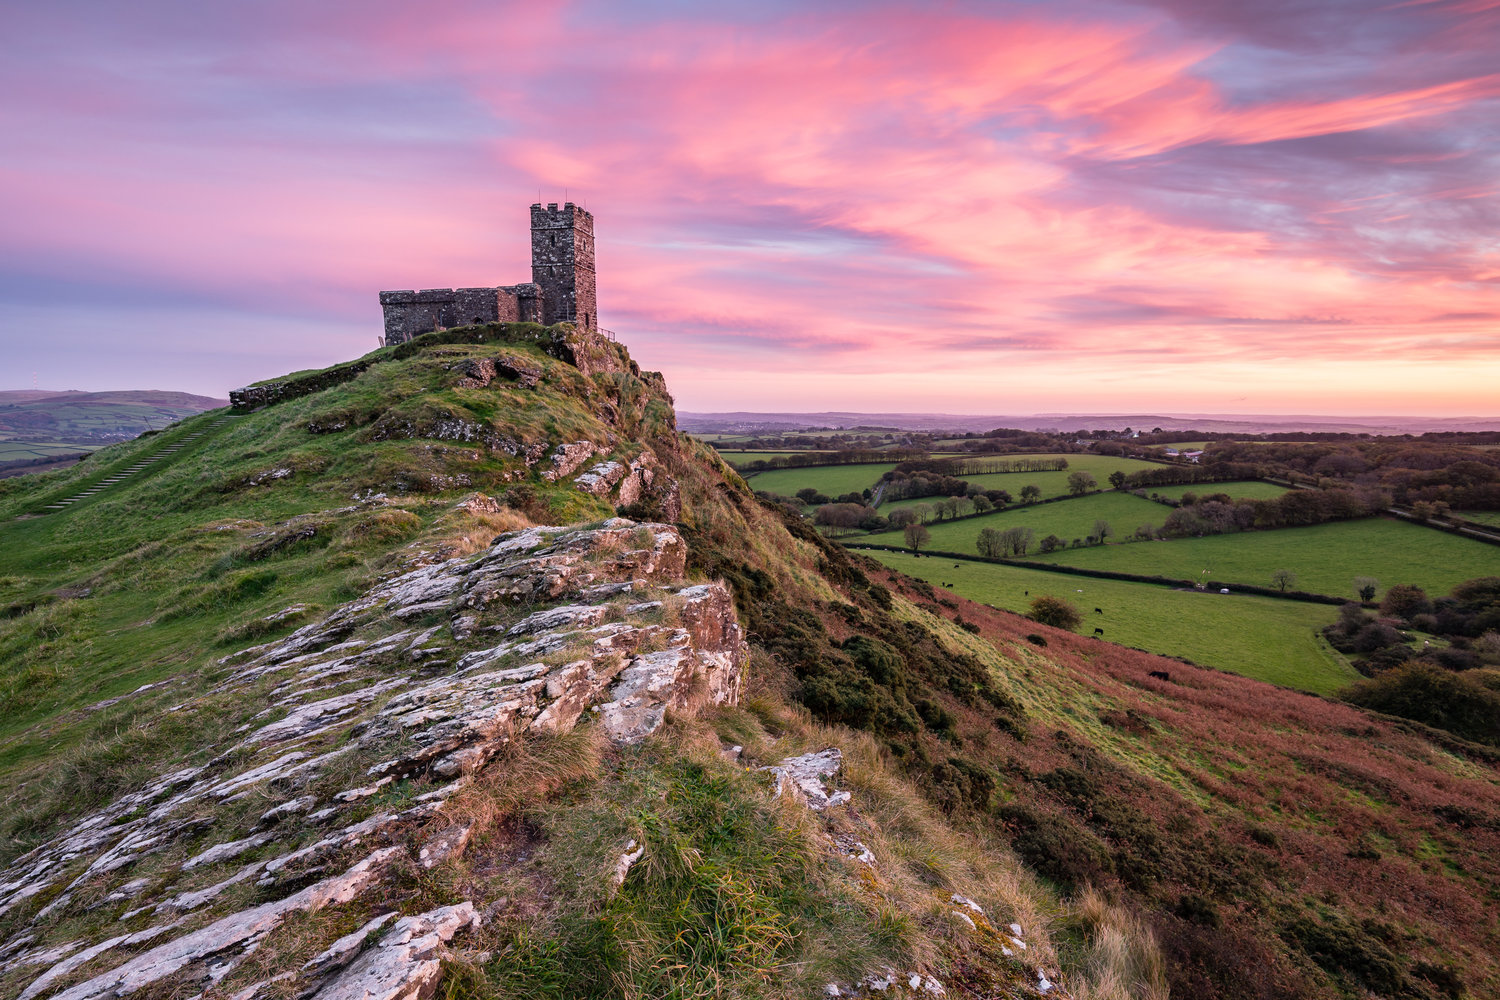 Brentor, church, local, Dartmoor, sunset, landscape, moorland